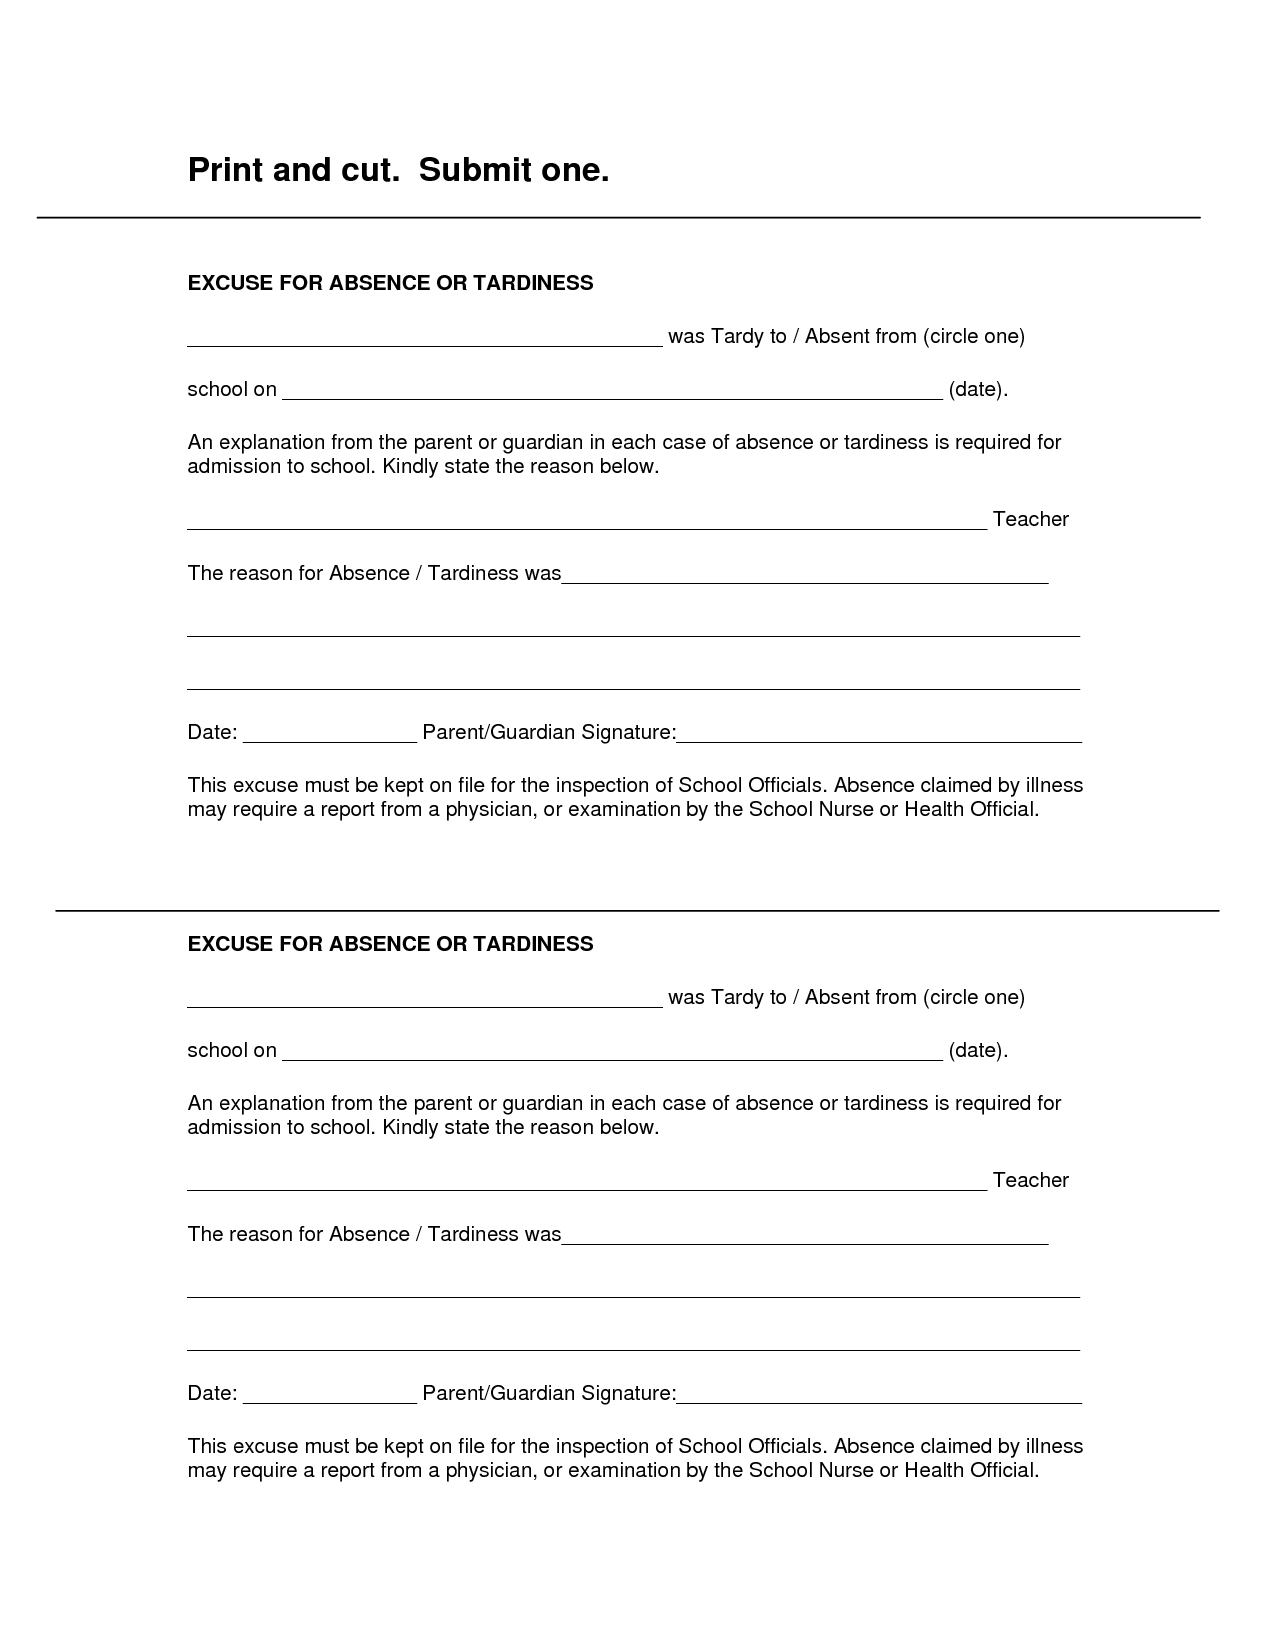 Free Printable Doctors Excuse For Work | Rota Template - Free Printable Doctors Notes Templates